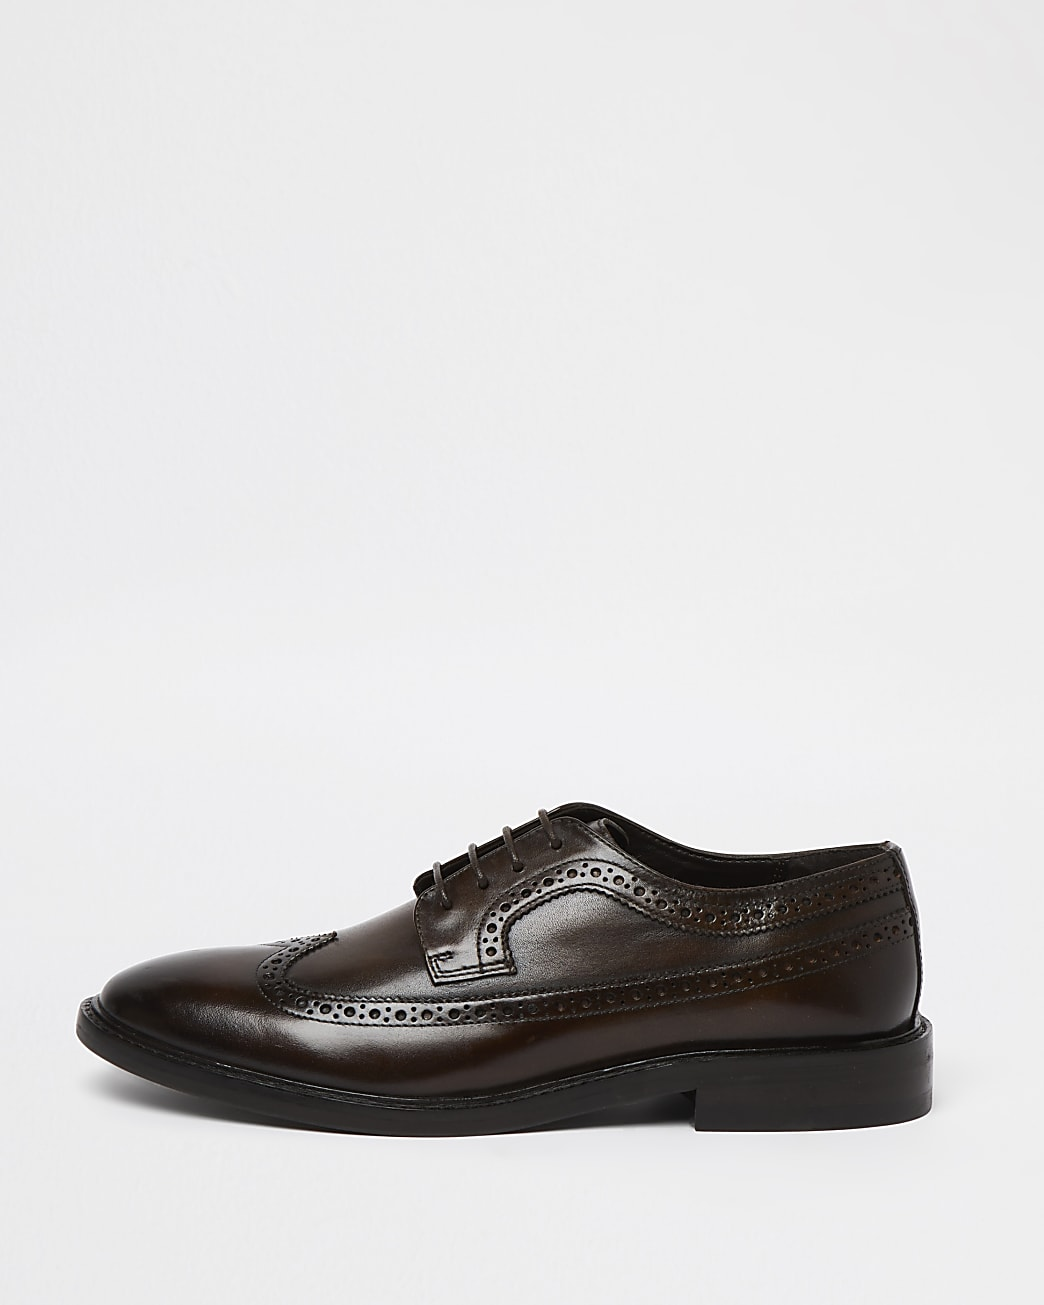 Brown brogue lace up derby shoes